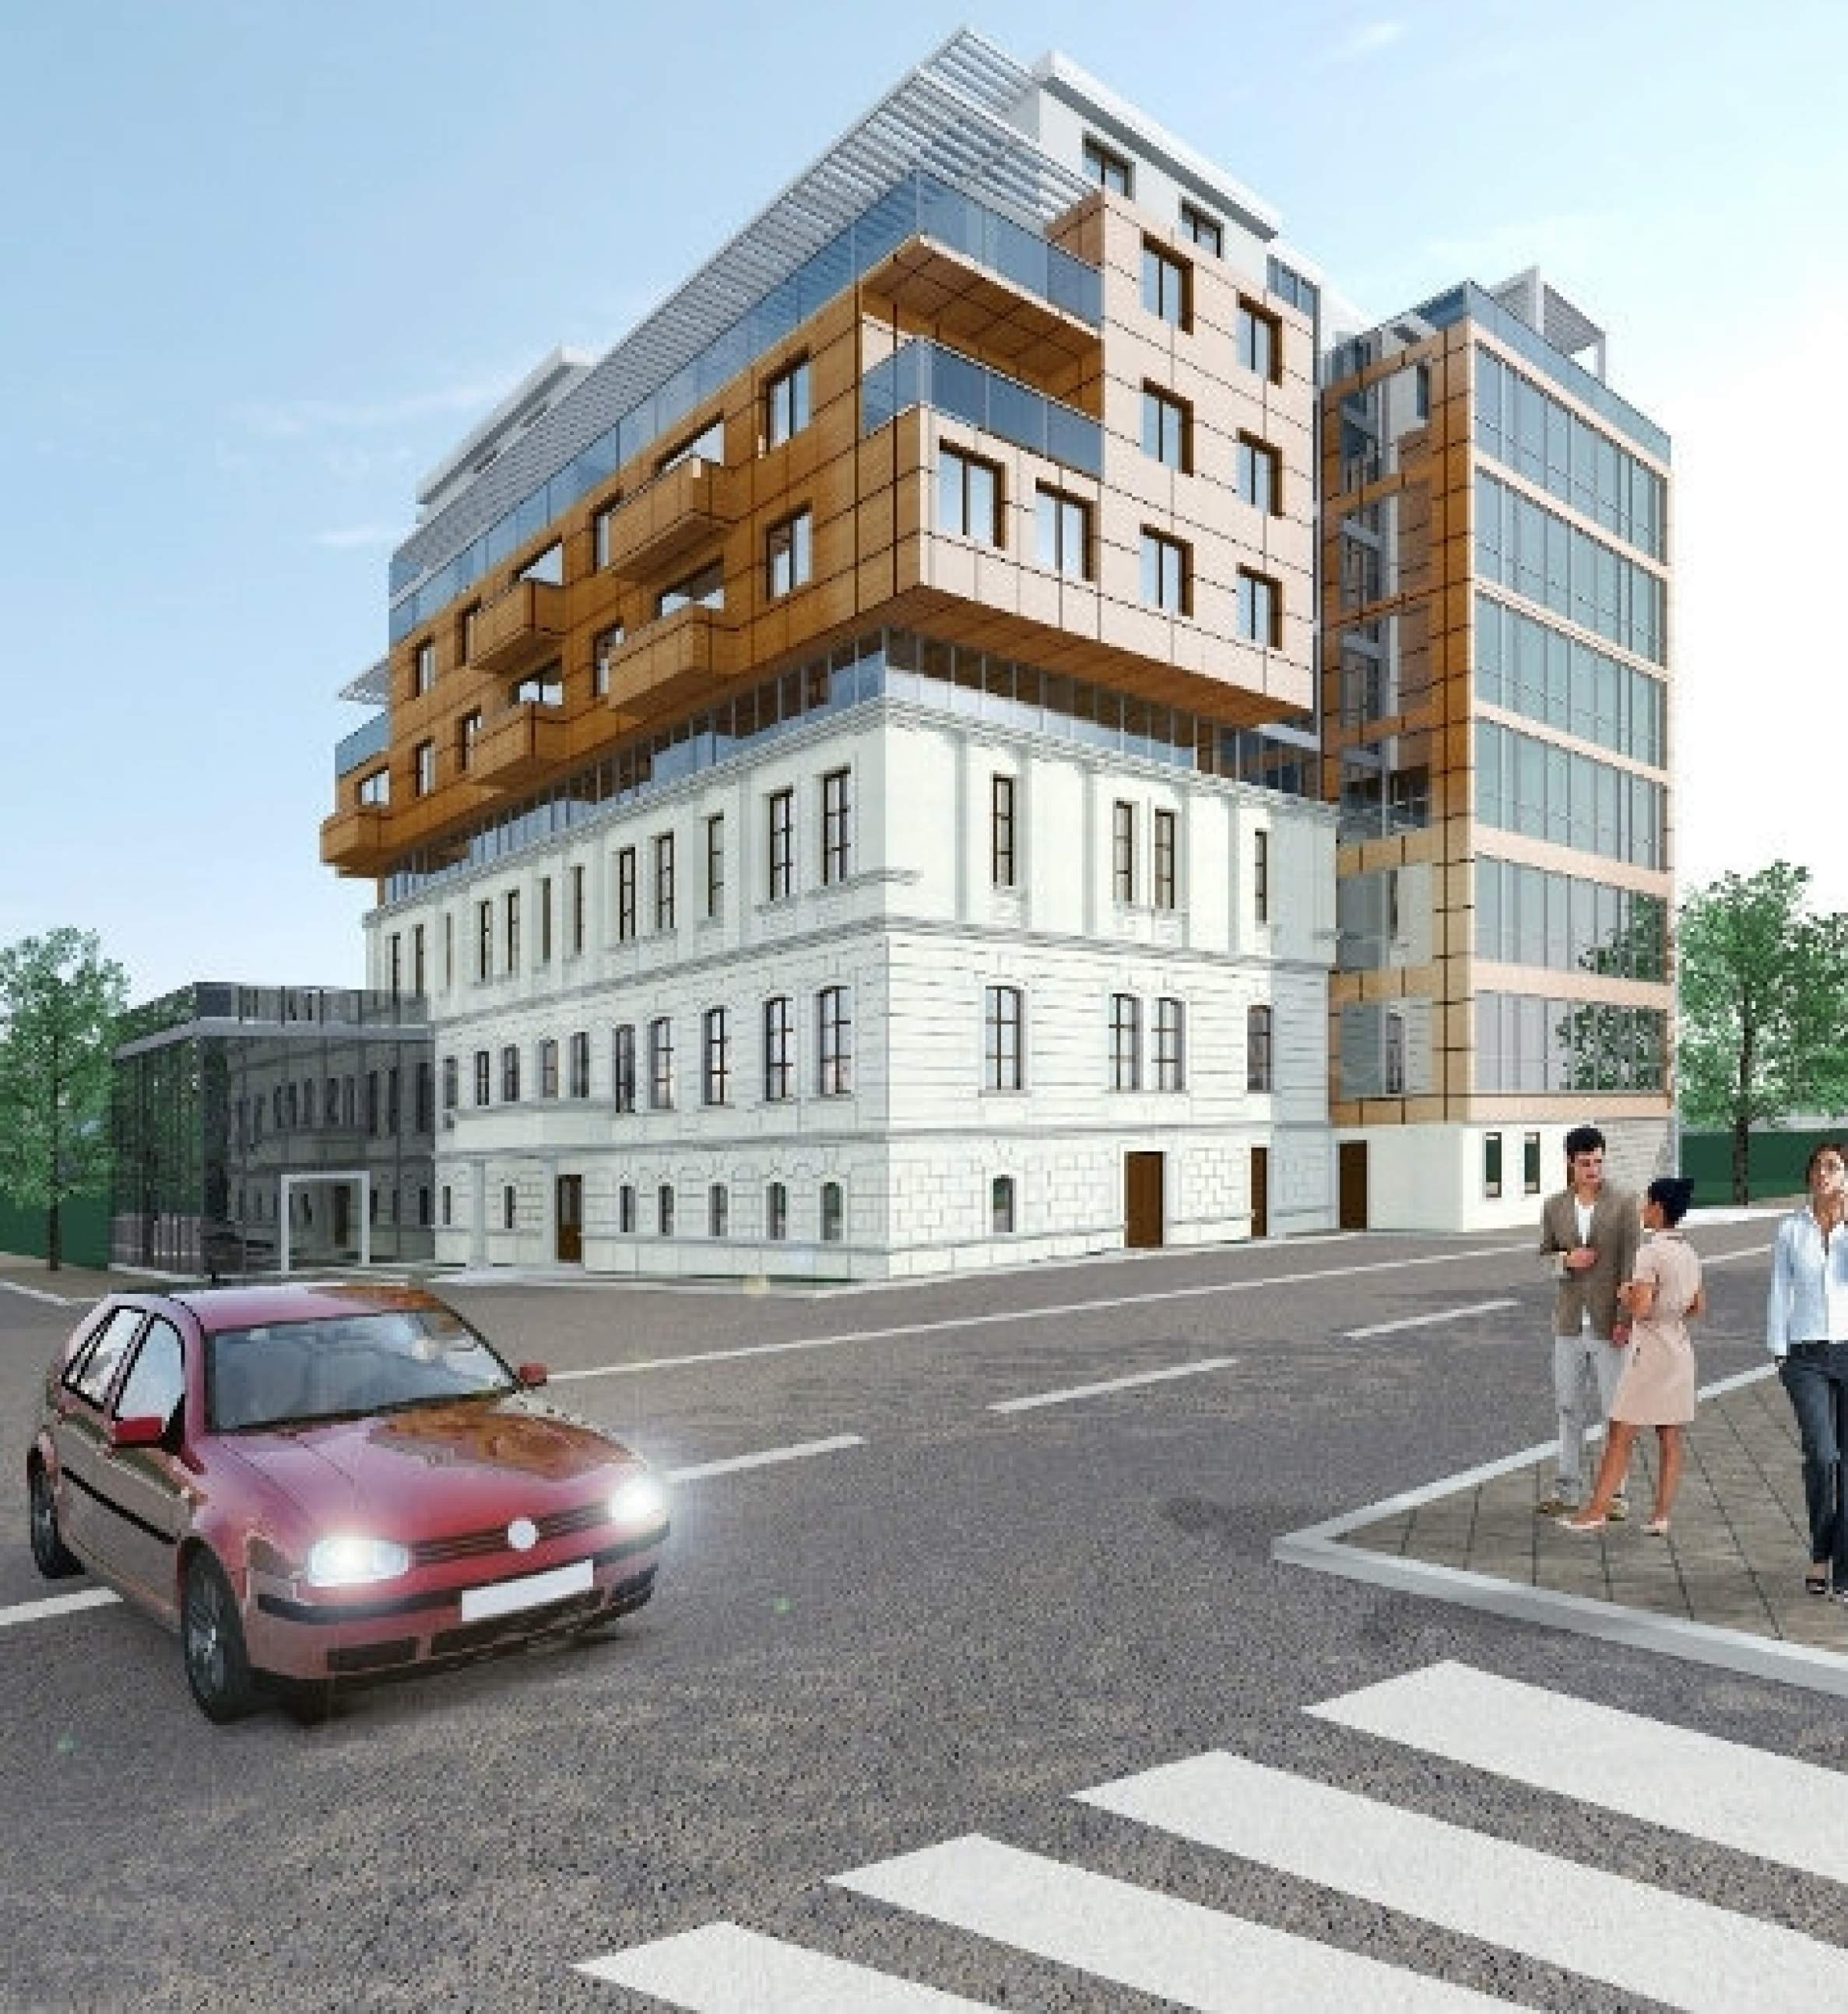 Apartments in a mixed use building in the city center2 - Stonehard